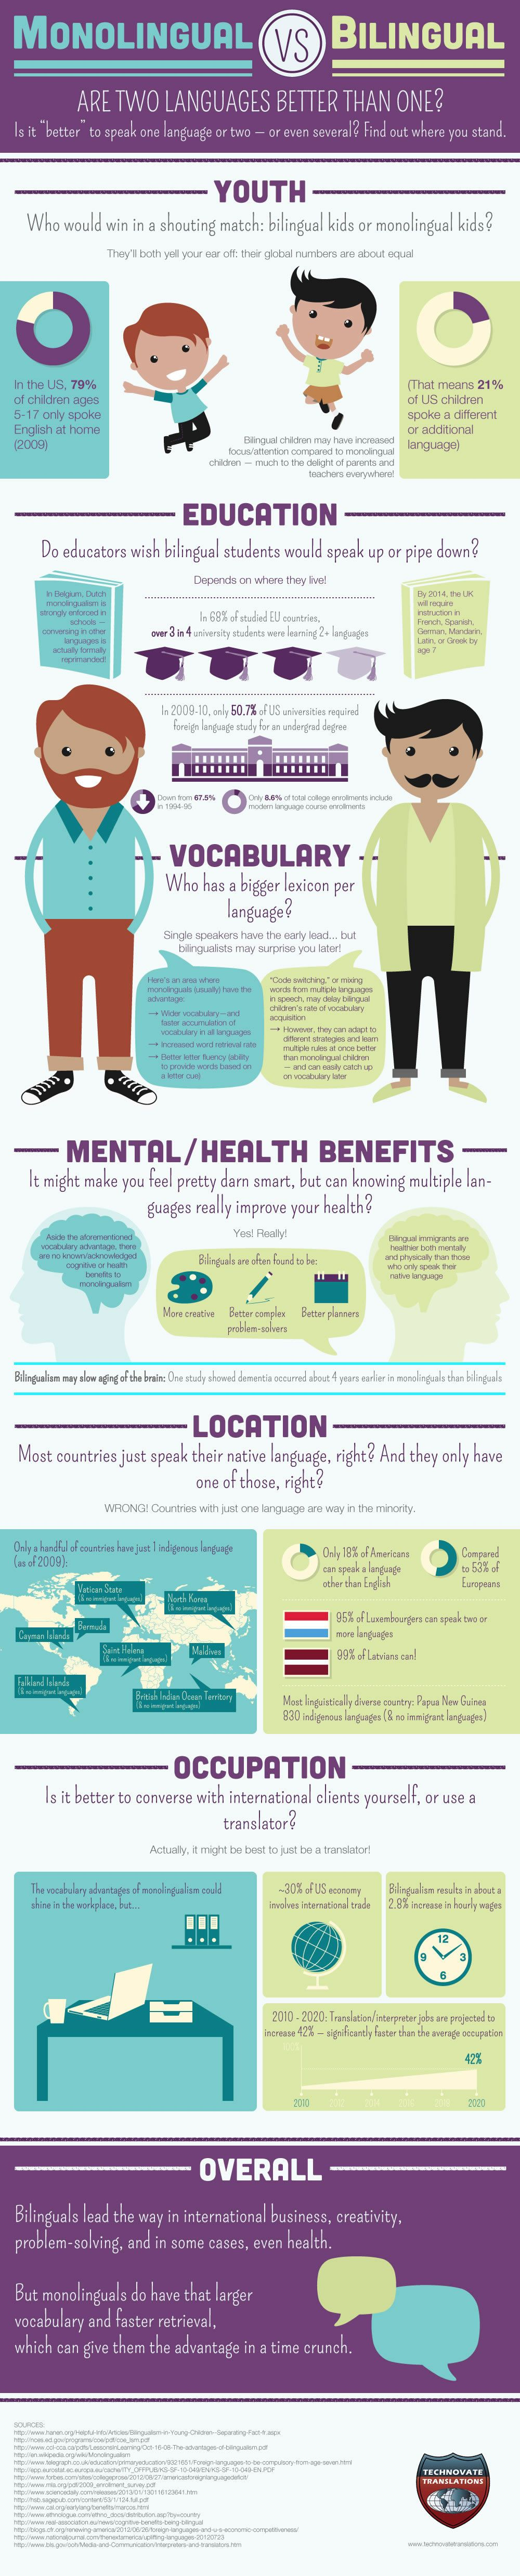 78 Education Ideas Education Educational Infographic Infographic